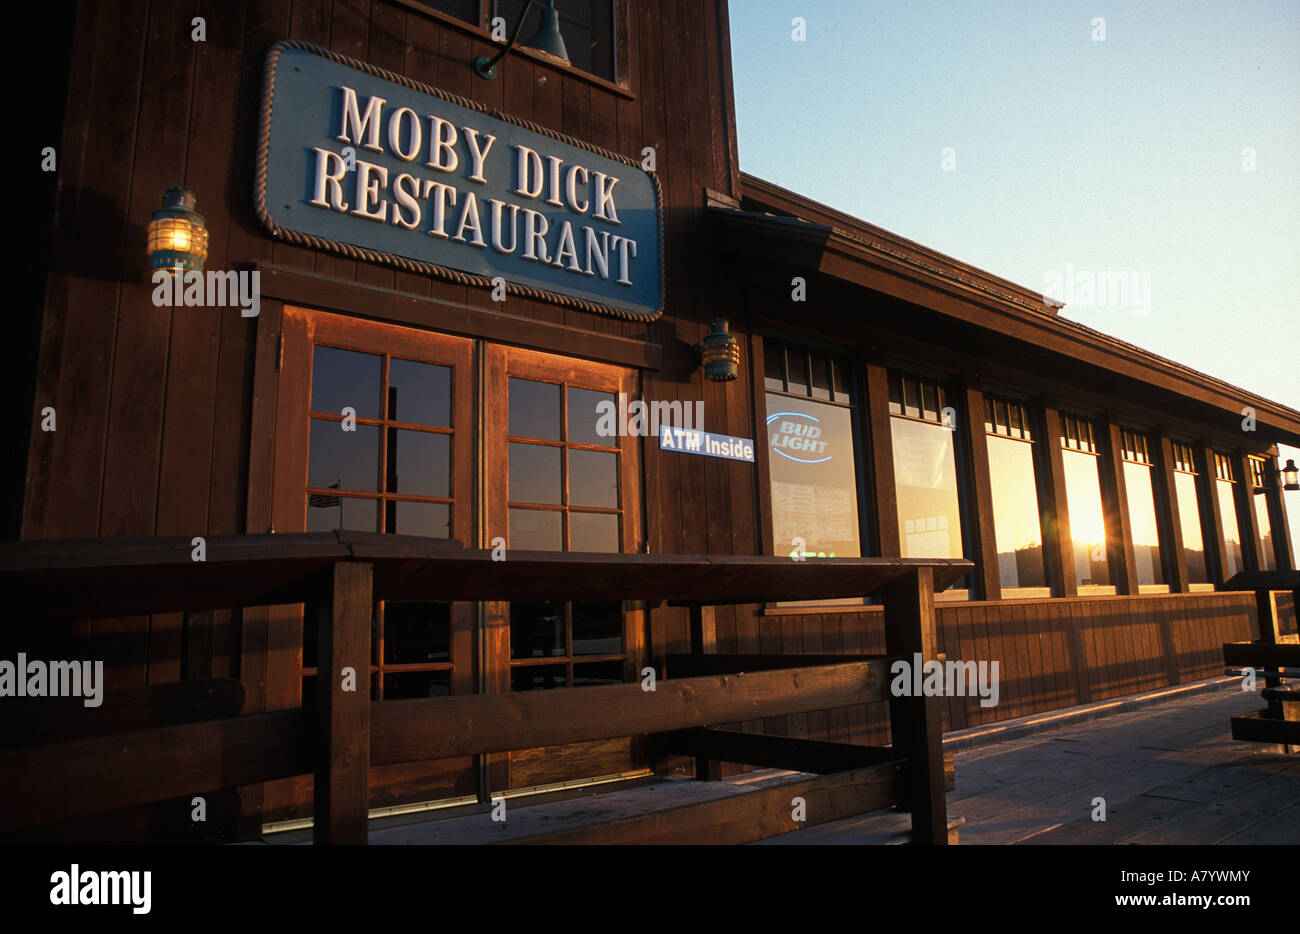 mobydickrestaurant